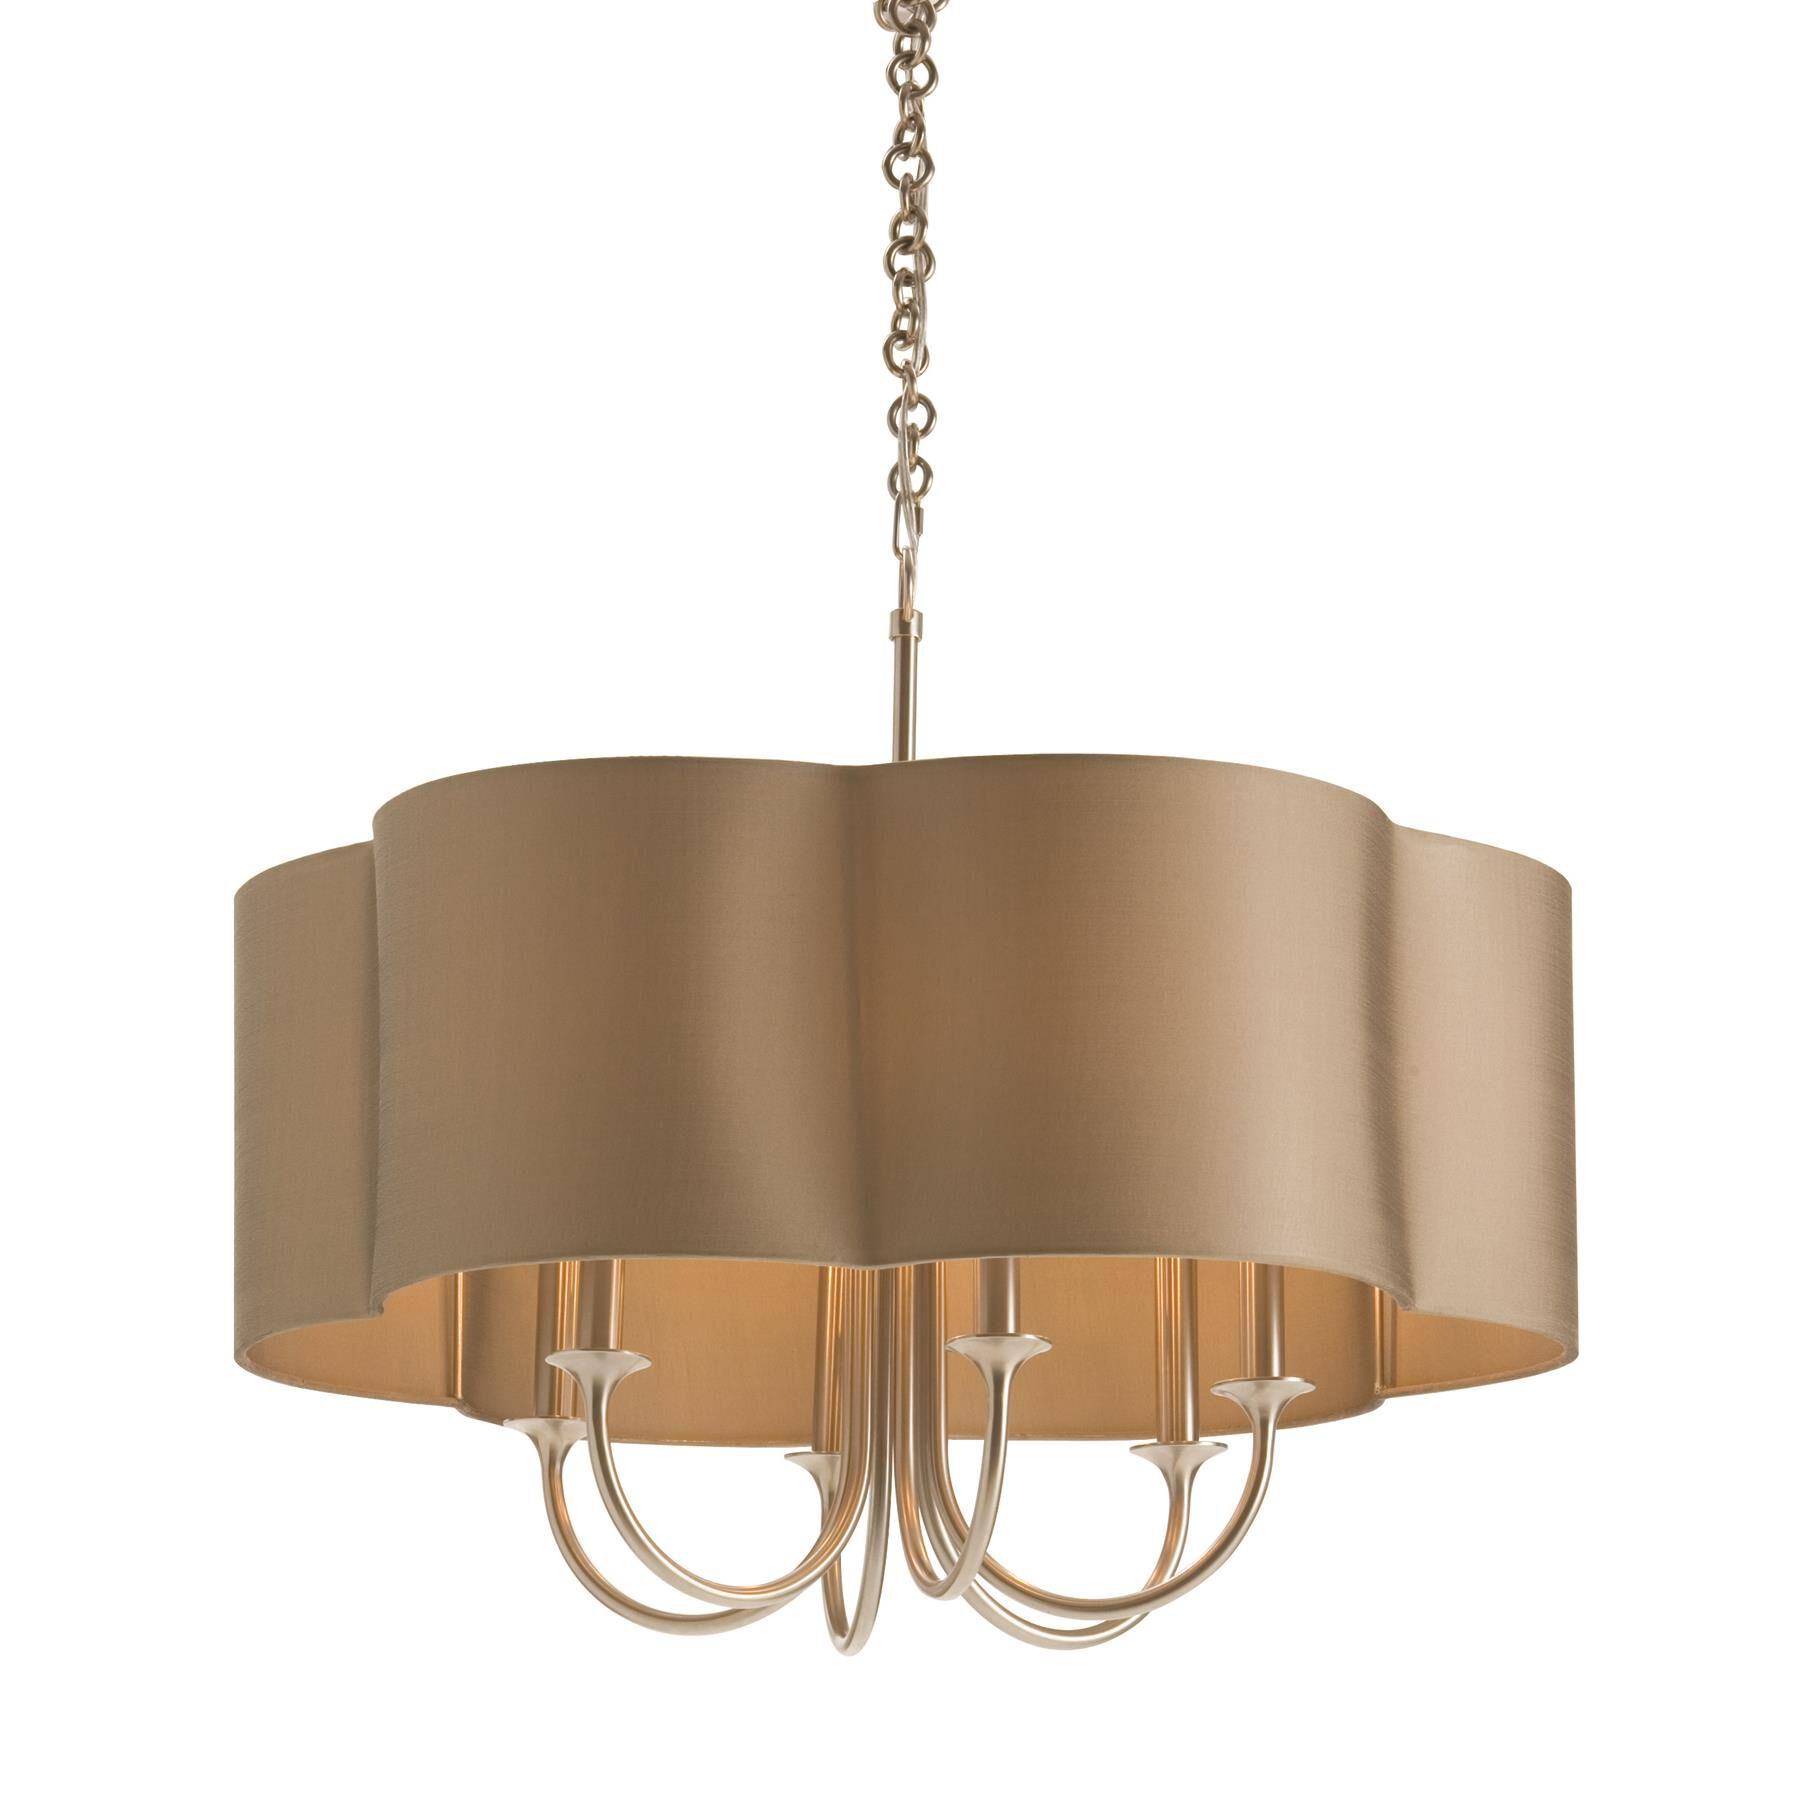 Arteriors Home Rittenhouse 26 Inch 6 Light Chandelier Rittenhouse - 89408 - Transitional Chandelier